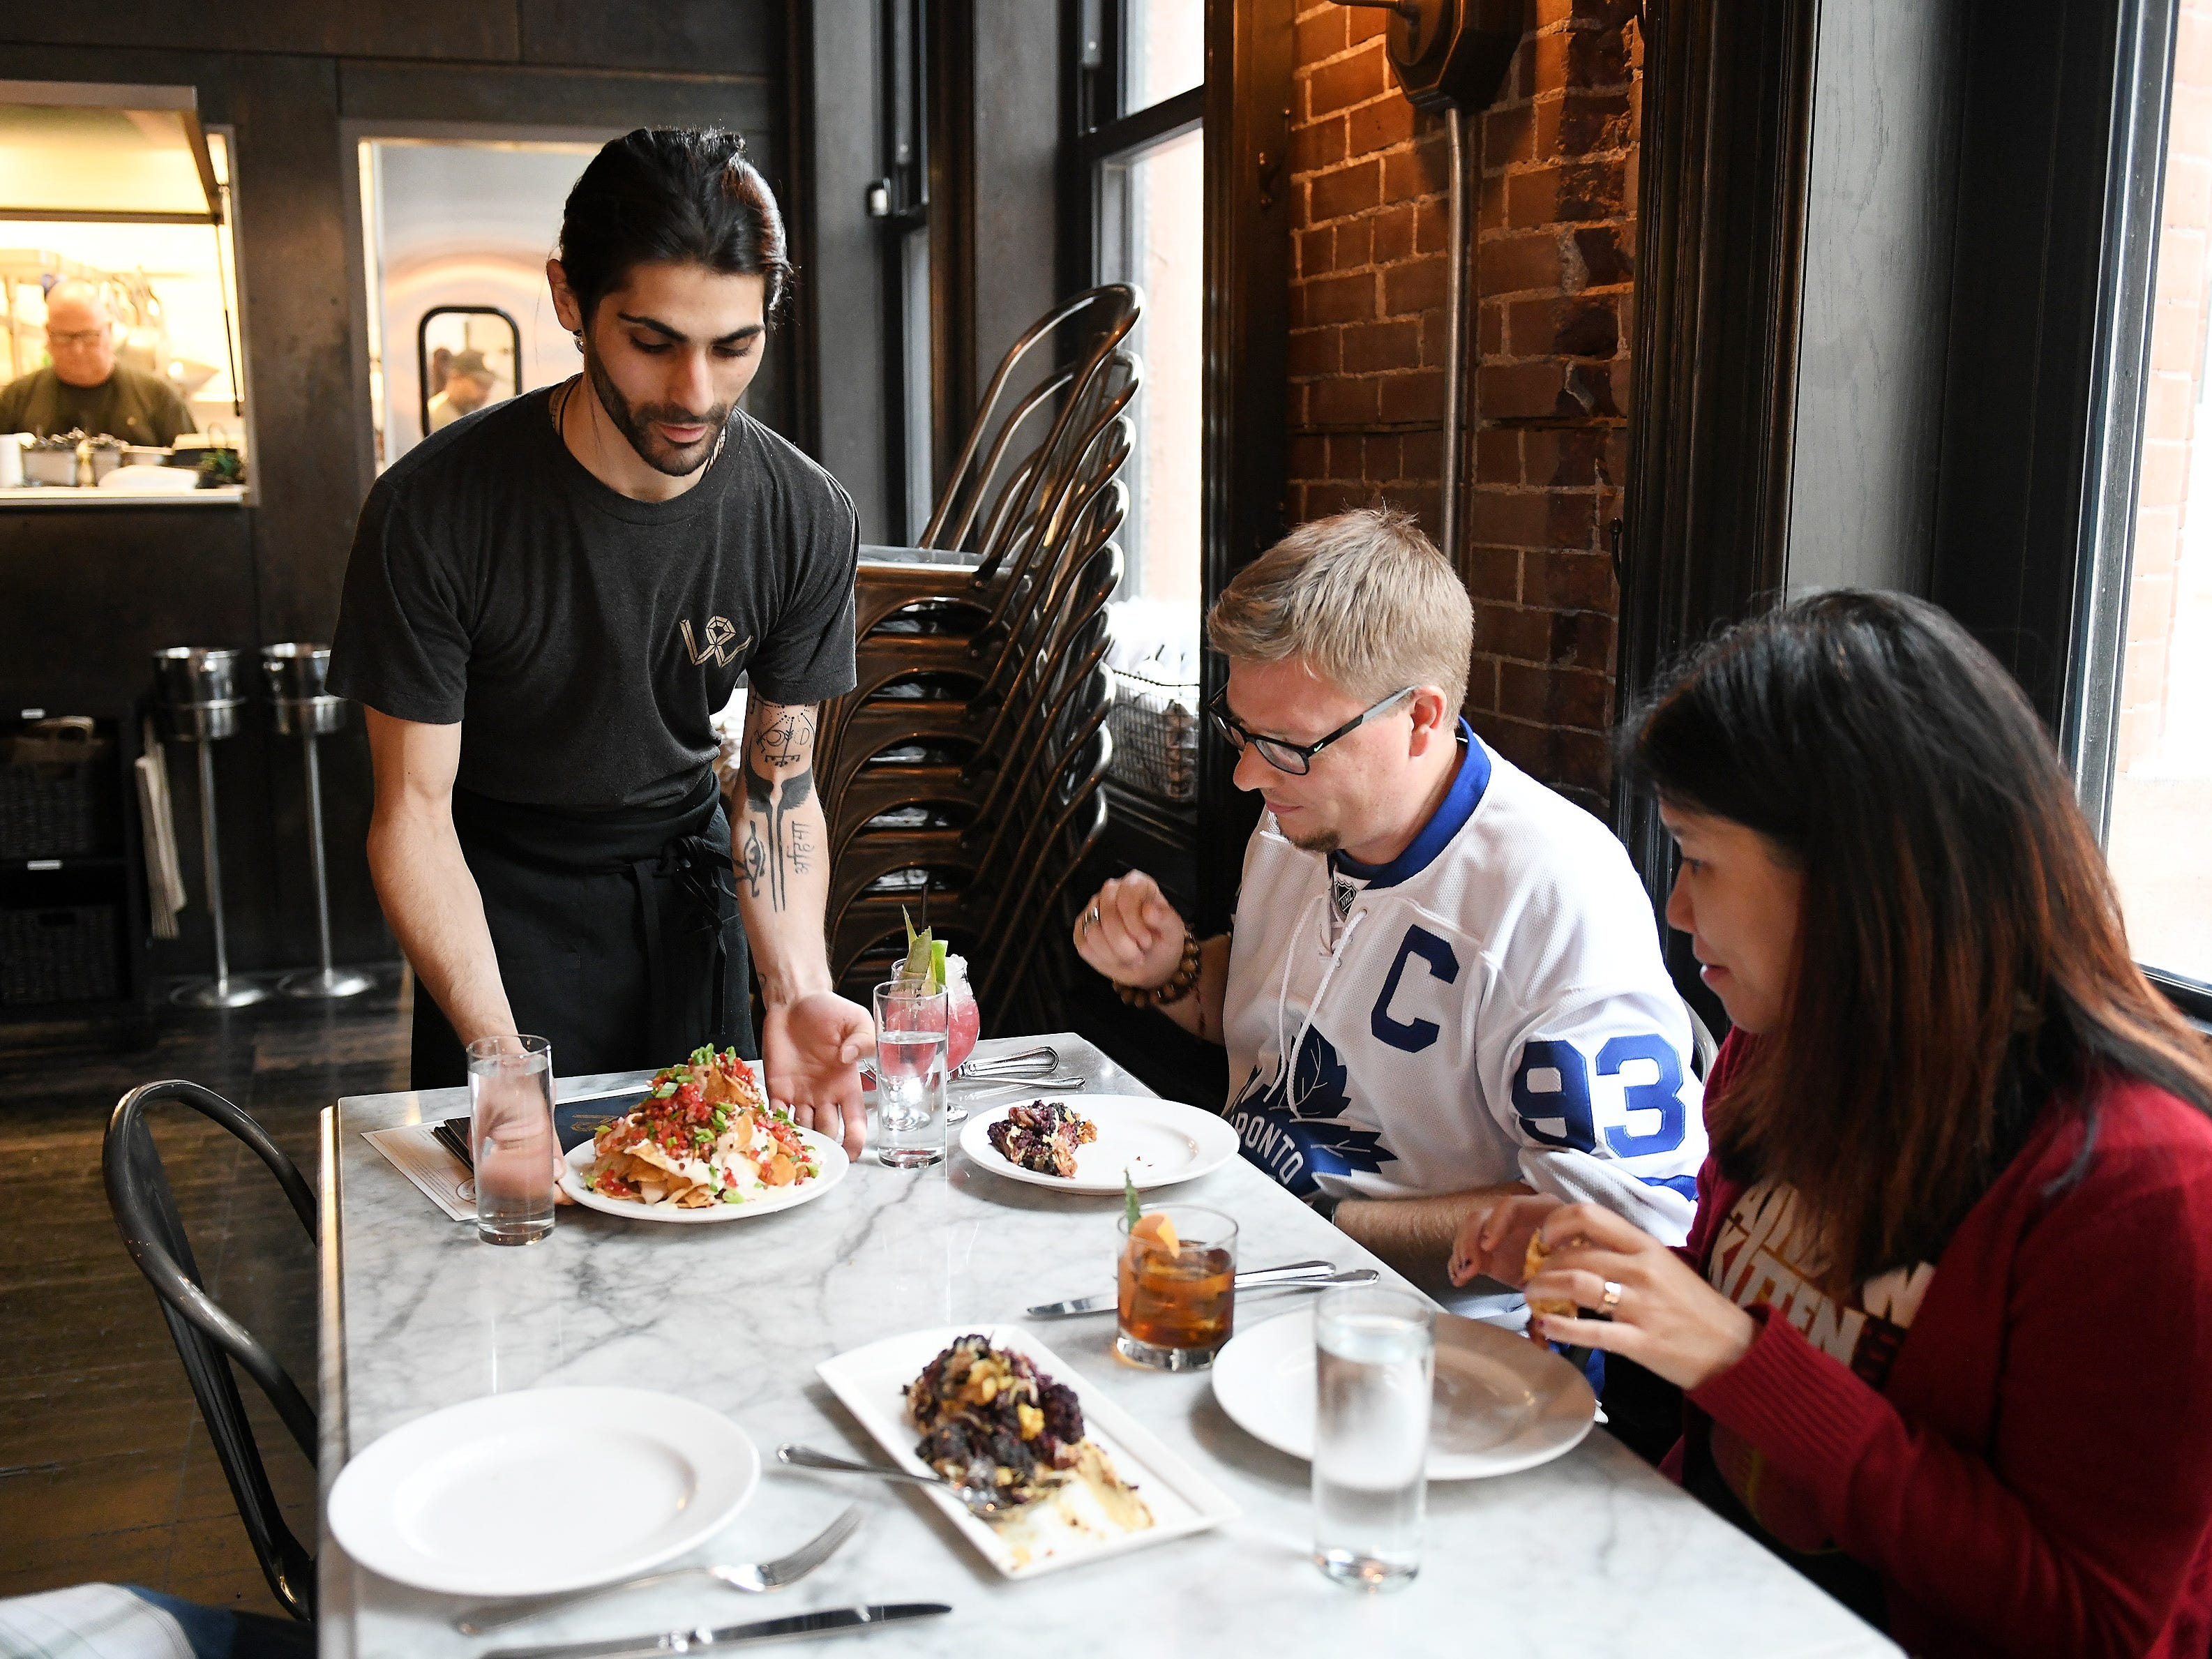 From left, Server Daniel Dehkordi serves fresh potato chips topped with white cheddar cheese, bacon, scallions, tomato and relish Russ Johnson of Calgary and Daisy Chang of East Lansing. (Robin Buckson / The Detroit News)